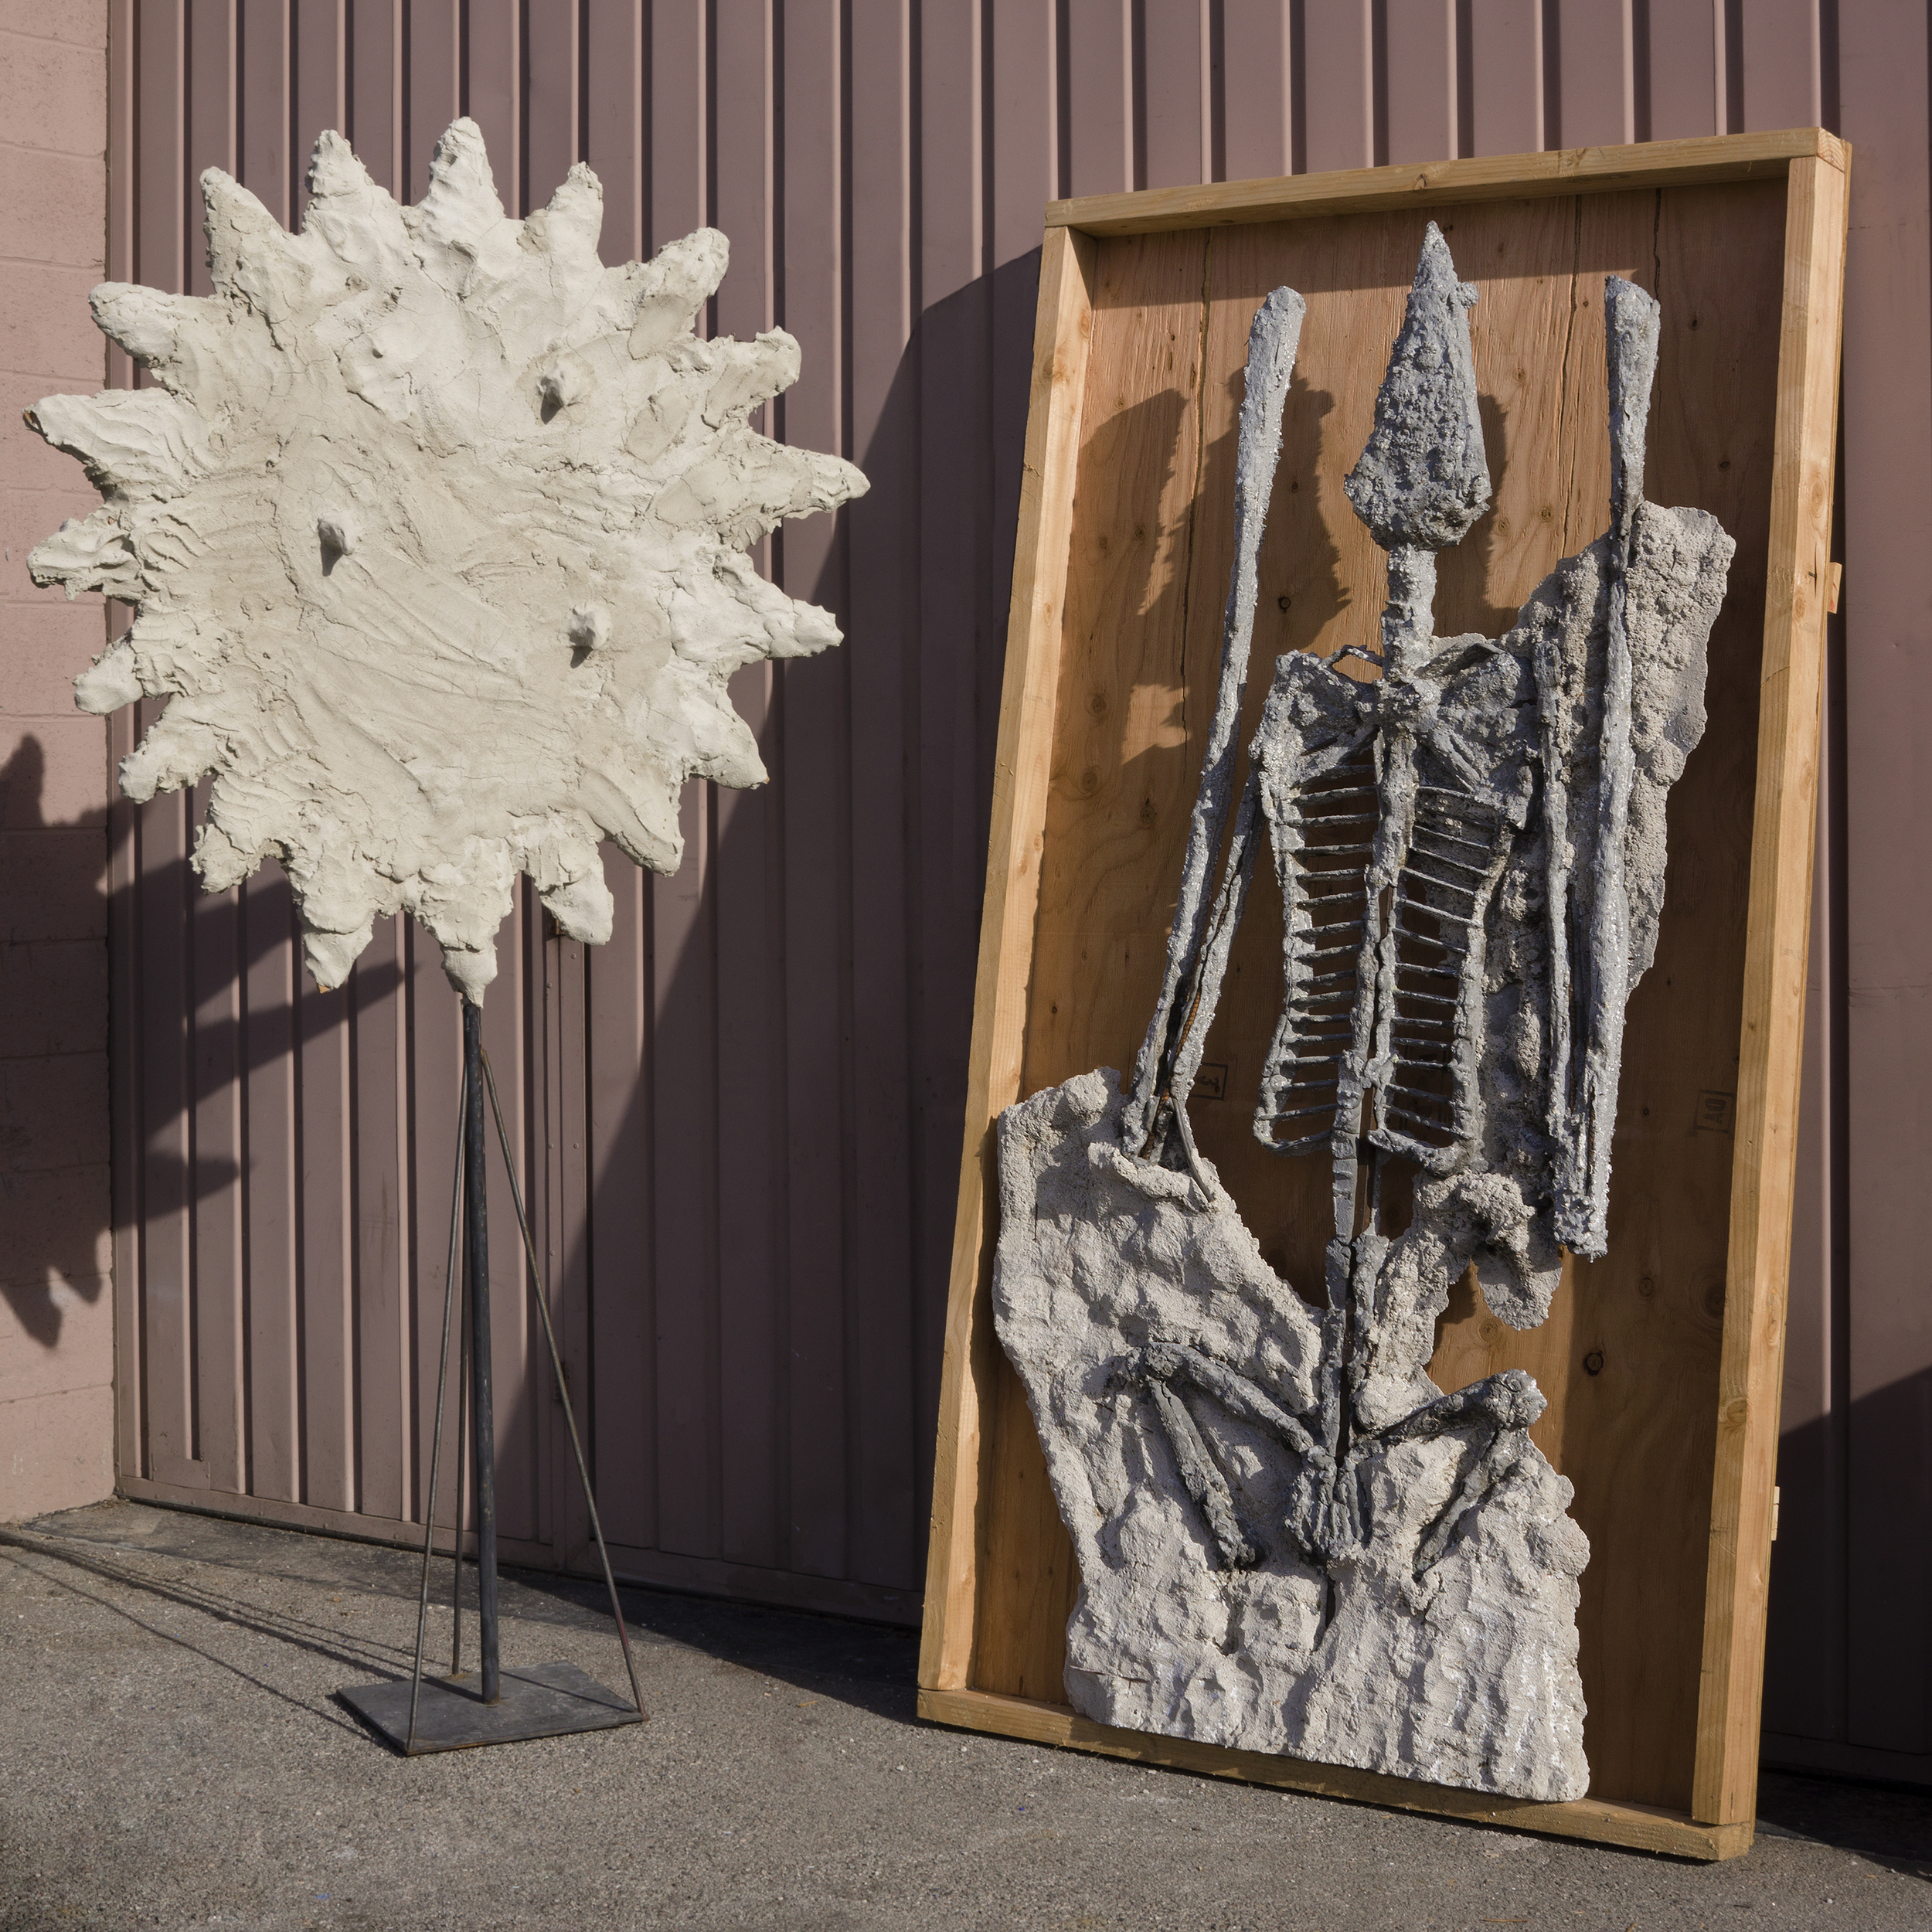 Evans Wittenberg, Empire of the Sun, 2016 steel, cement, wood, fossil 84 x 48 x 4 inches, sun 88 x 48 x 12 inches